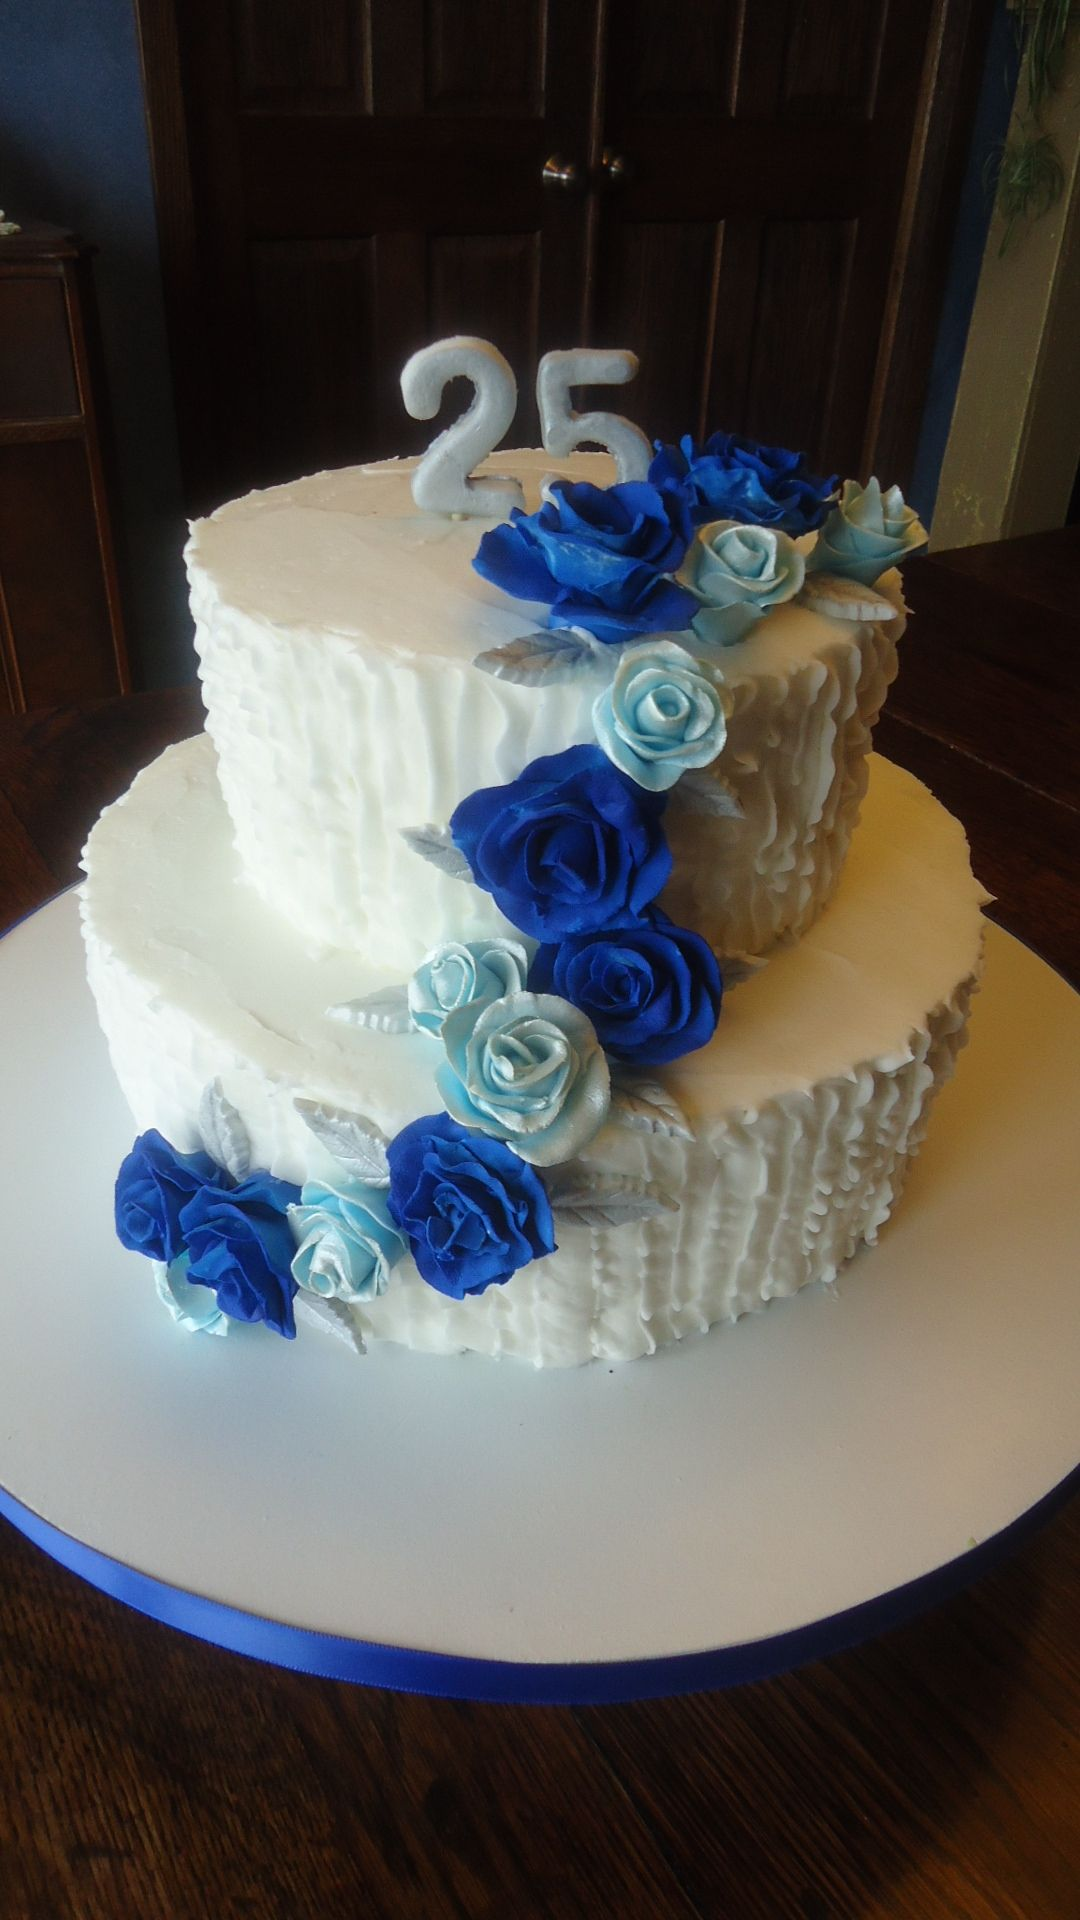 Cake Designs For 25th Anniversary : 25th Wedding Anniversary Cake, royal & ice blue roses ...